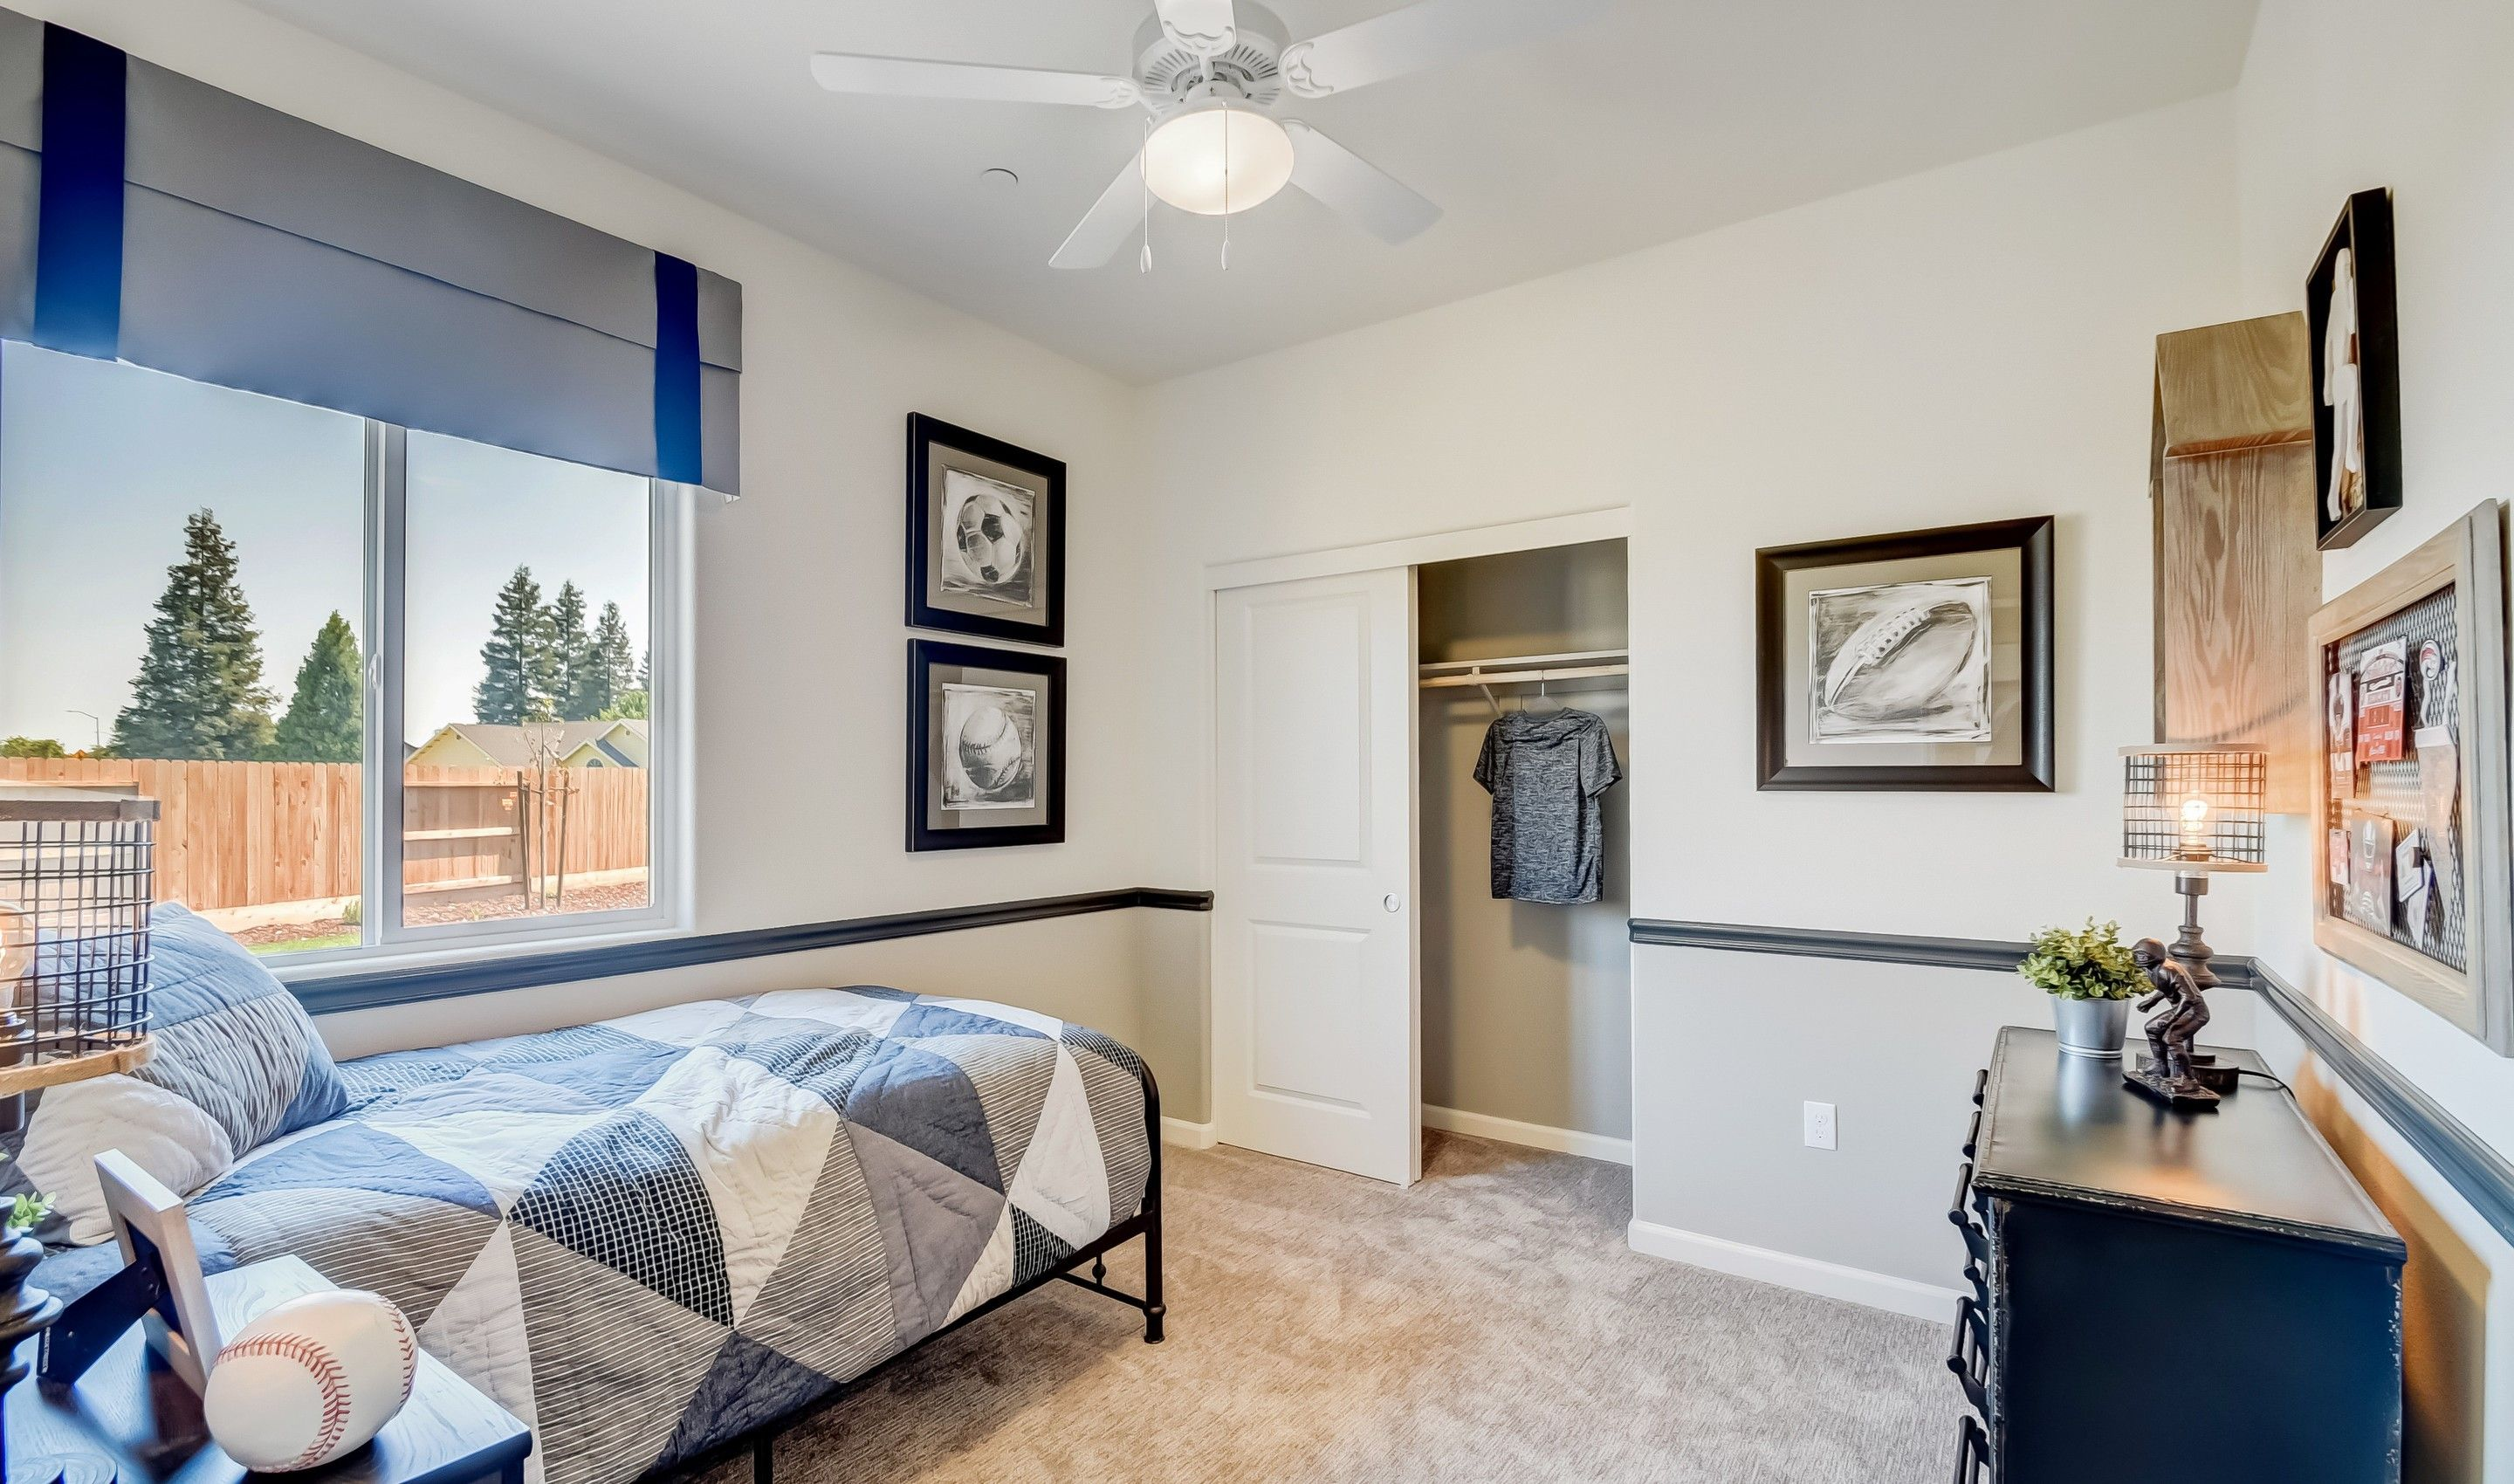 Bedroom featured in the Paso Fino By K. Hovnanian® Homes in Fresno, CA